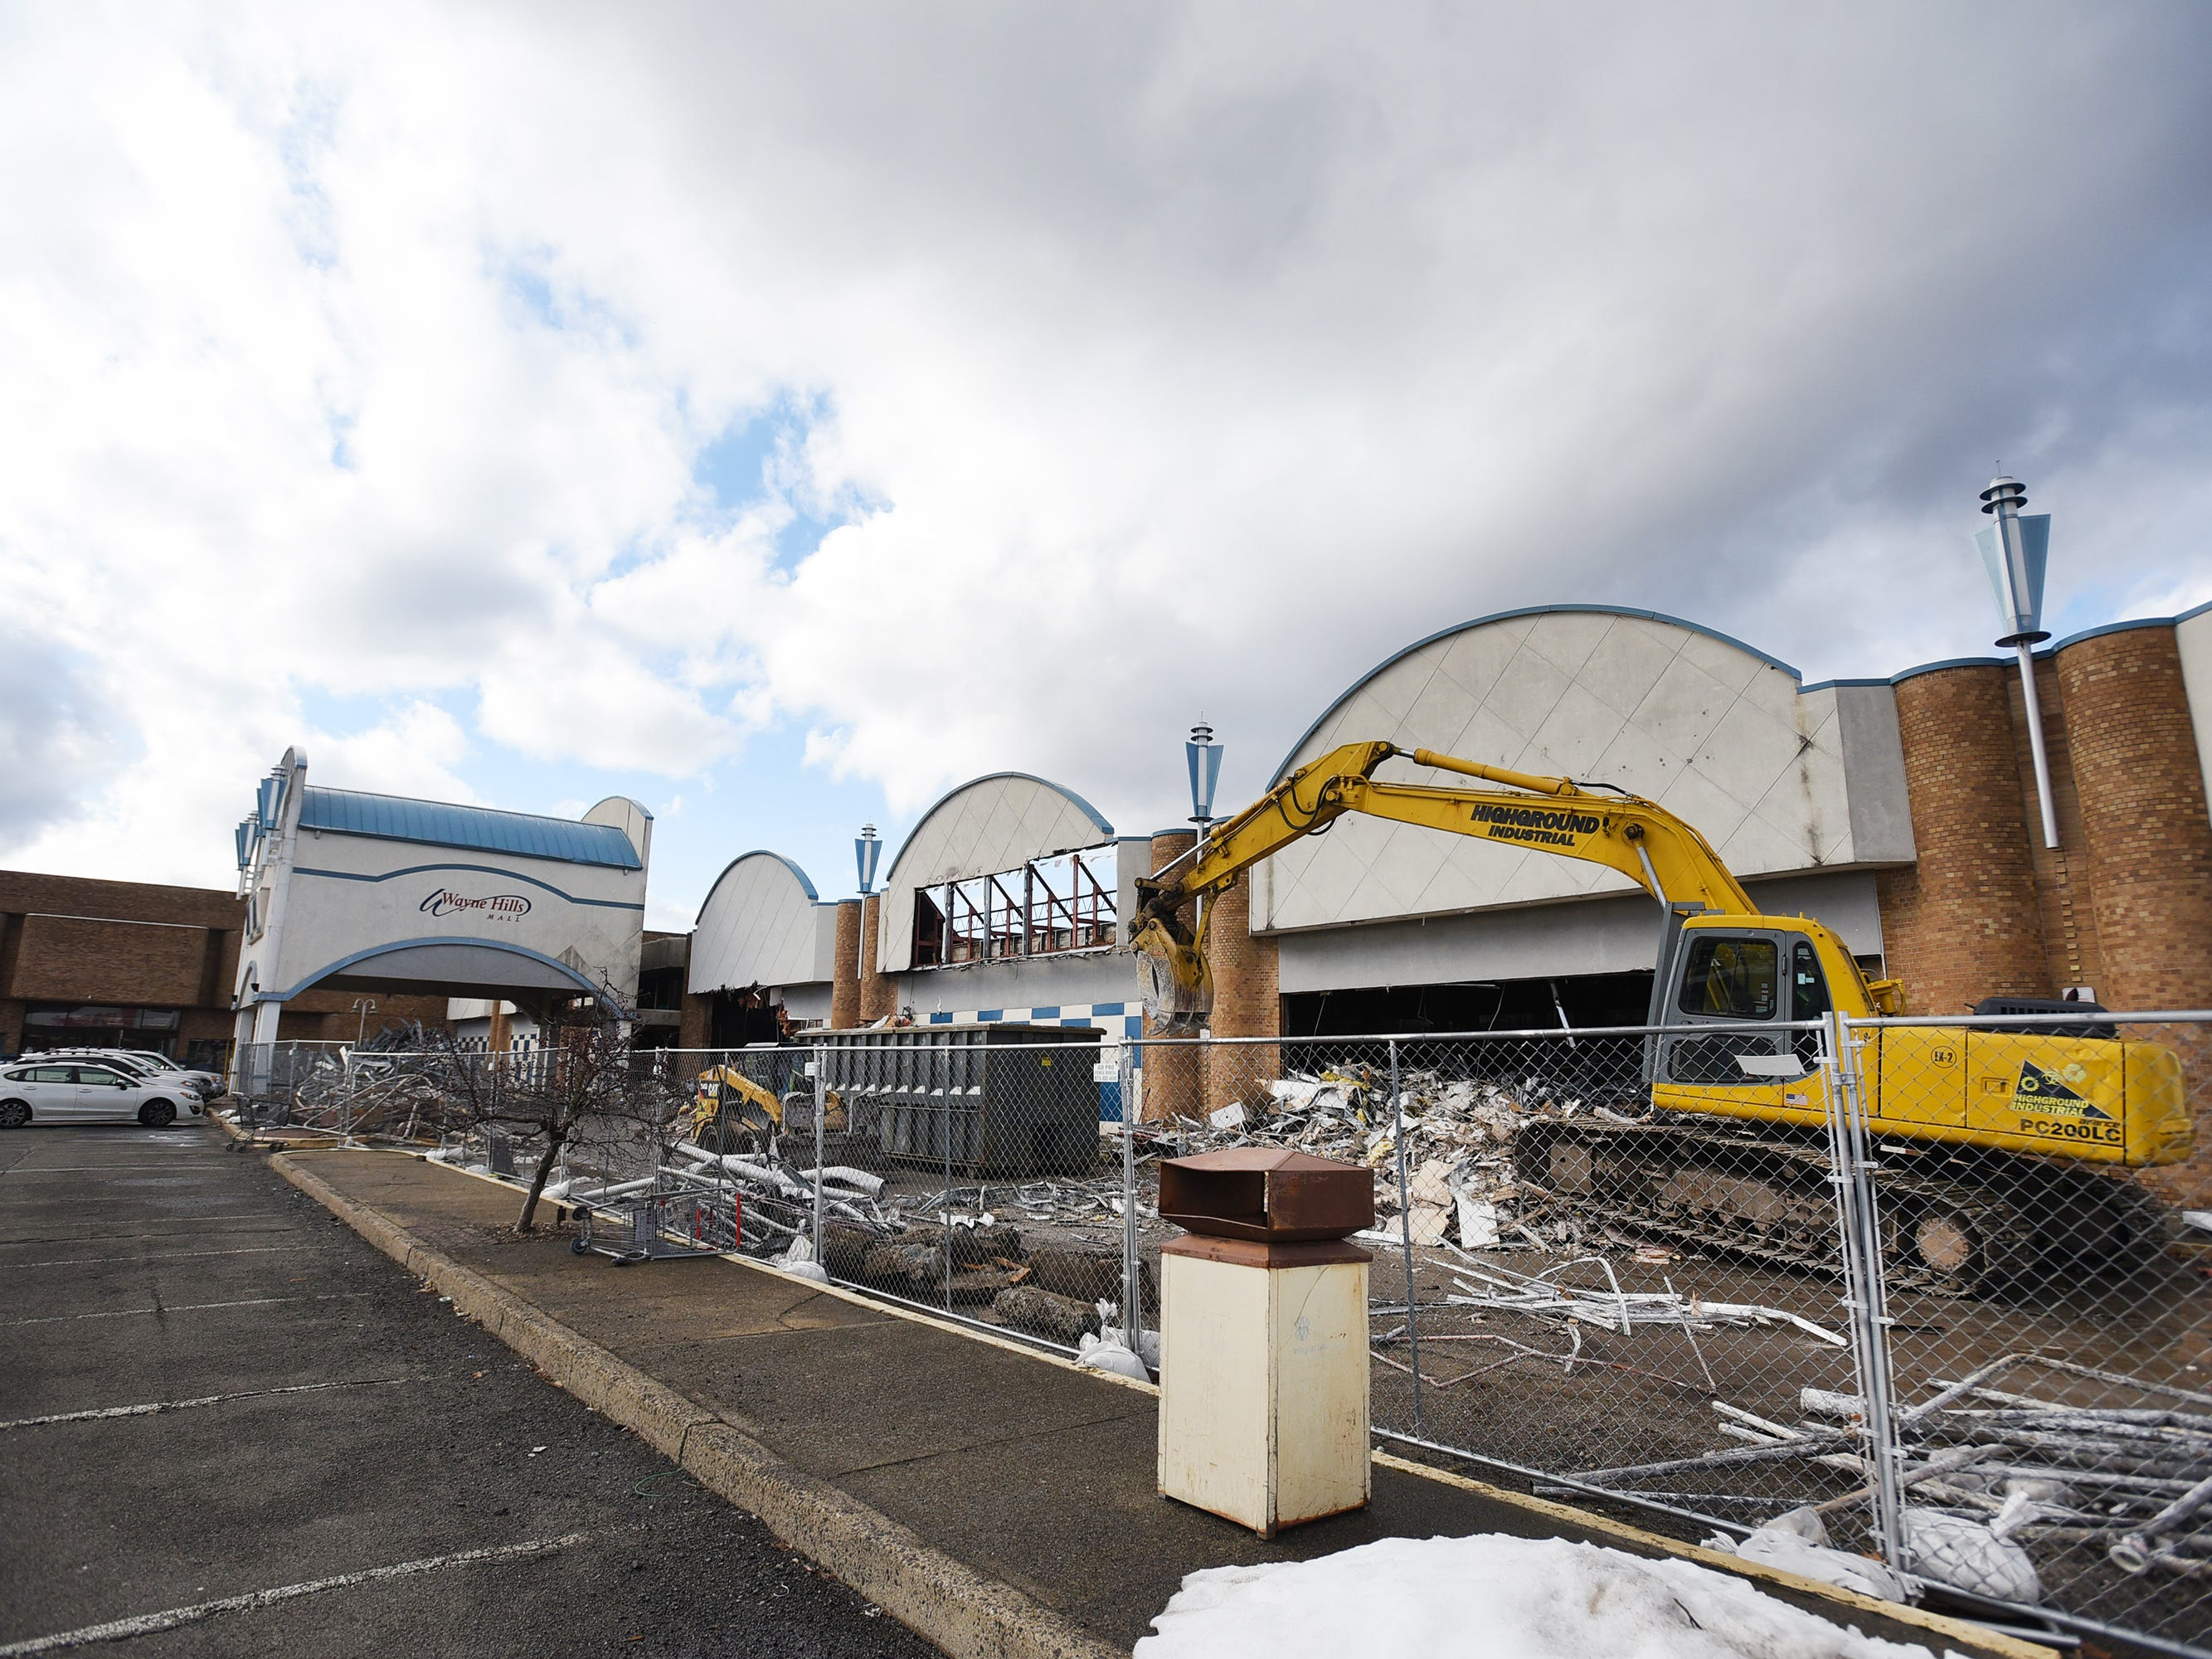 Wayne Hills Mall is being demolished, photographed   in Wayne on 02/18/19.